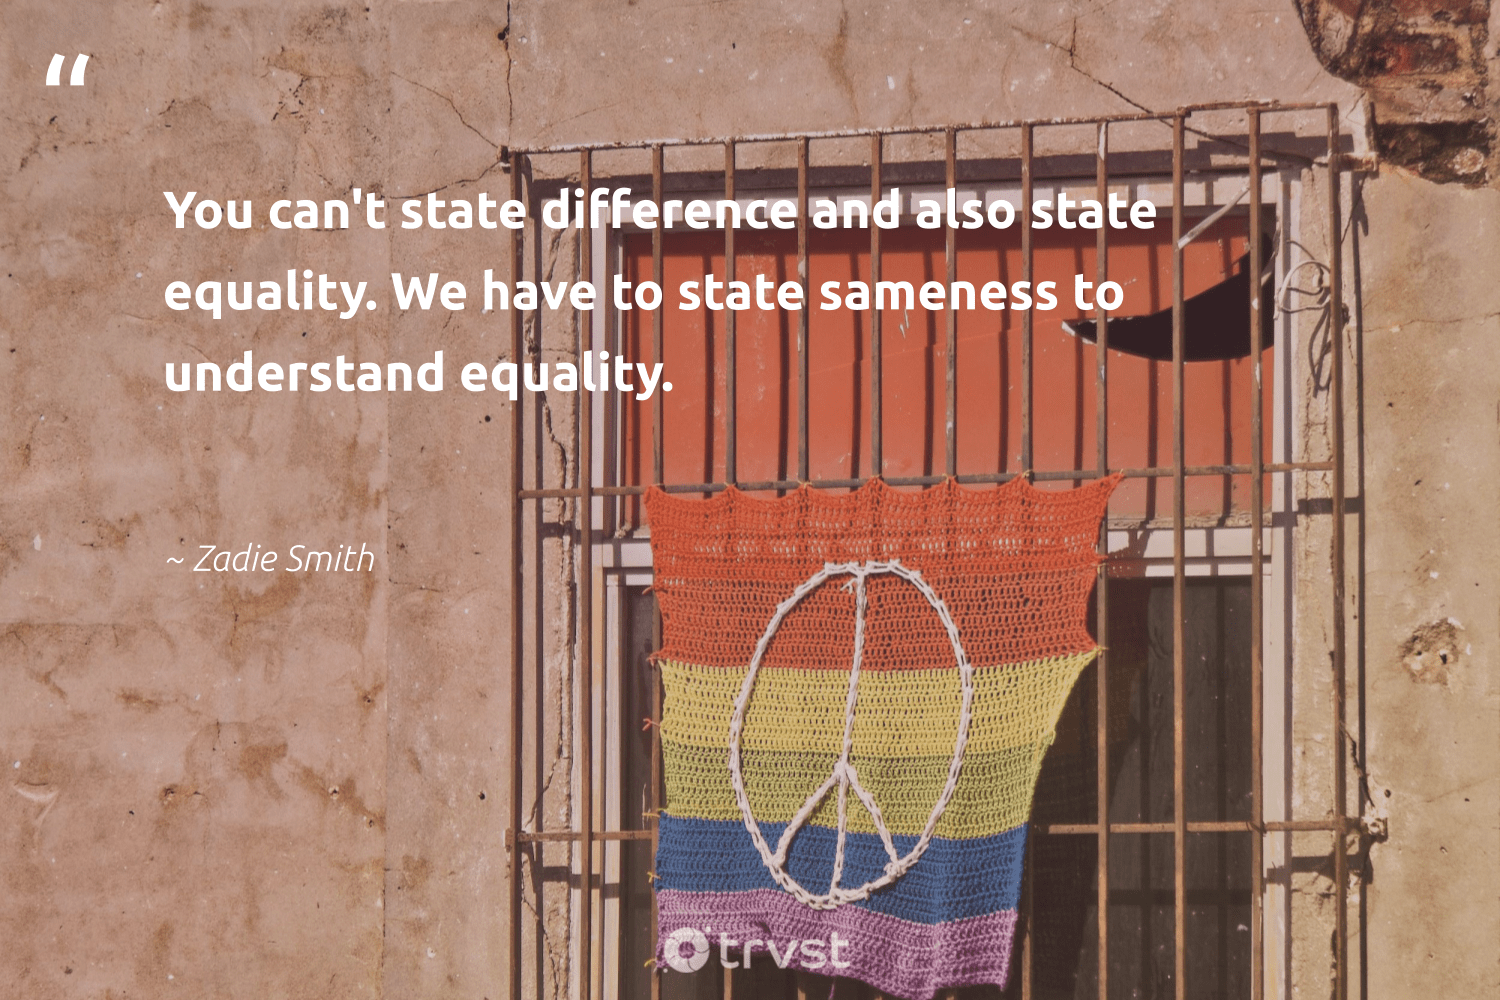 """You can't state difference and also state equality. We have to state sameness to understand equality.""  - Zadie Smith #trvst #quotes #equality #empowerment #weareallone #giveback #beinspired #equalrights #socialgood #makeadifference #dogood #standup"